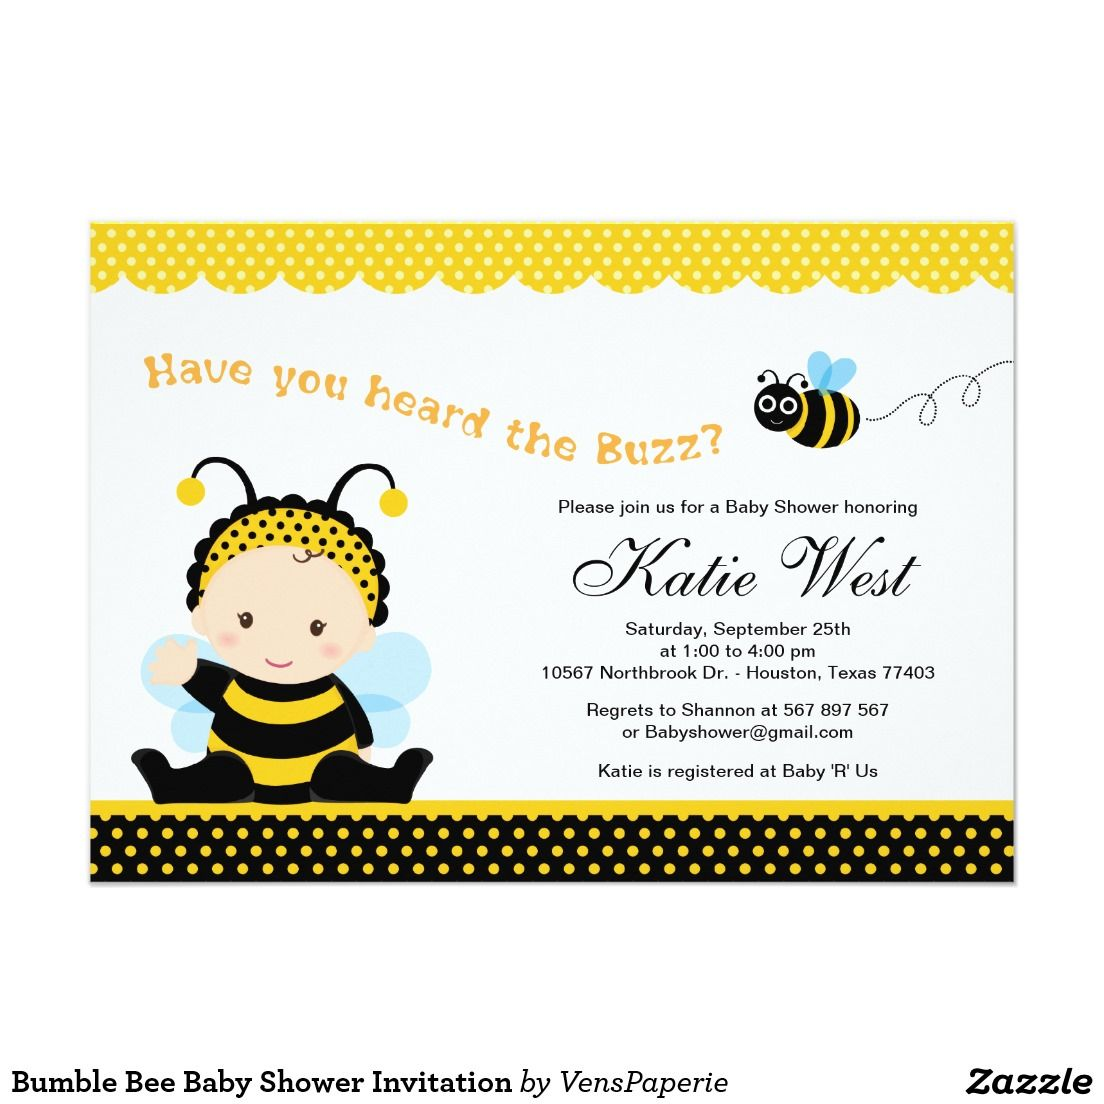 Bumble Bee Baby Shower Invitation | baby | Pinterest | Bumble bees ...